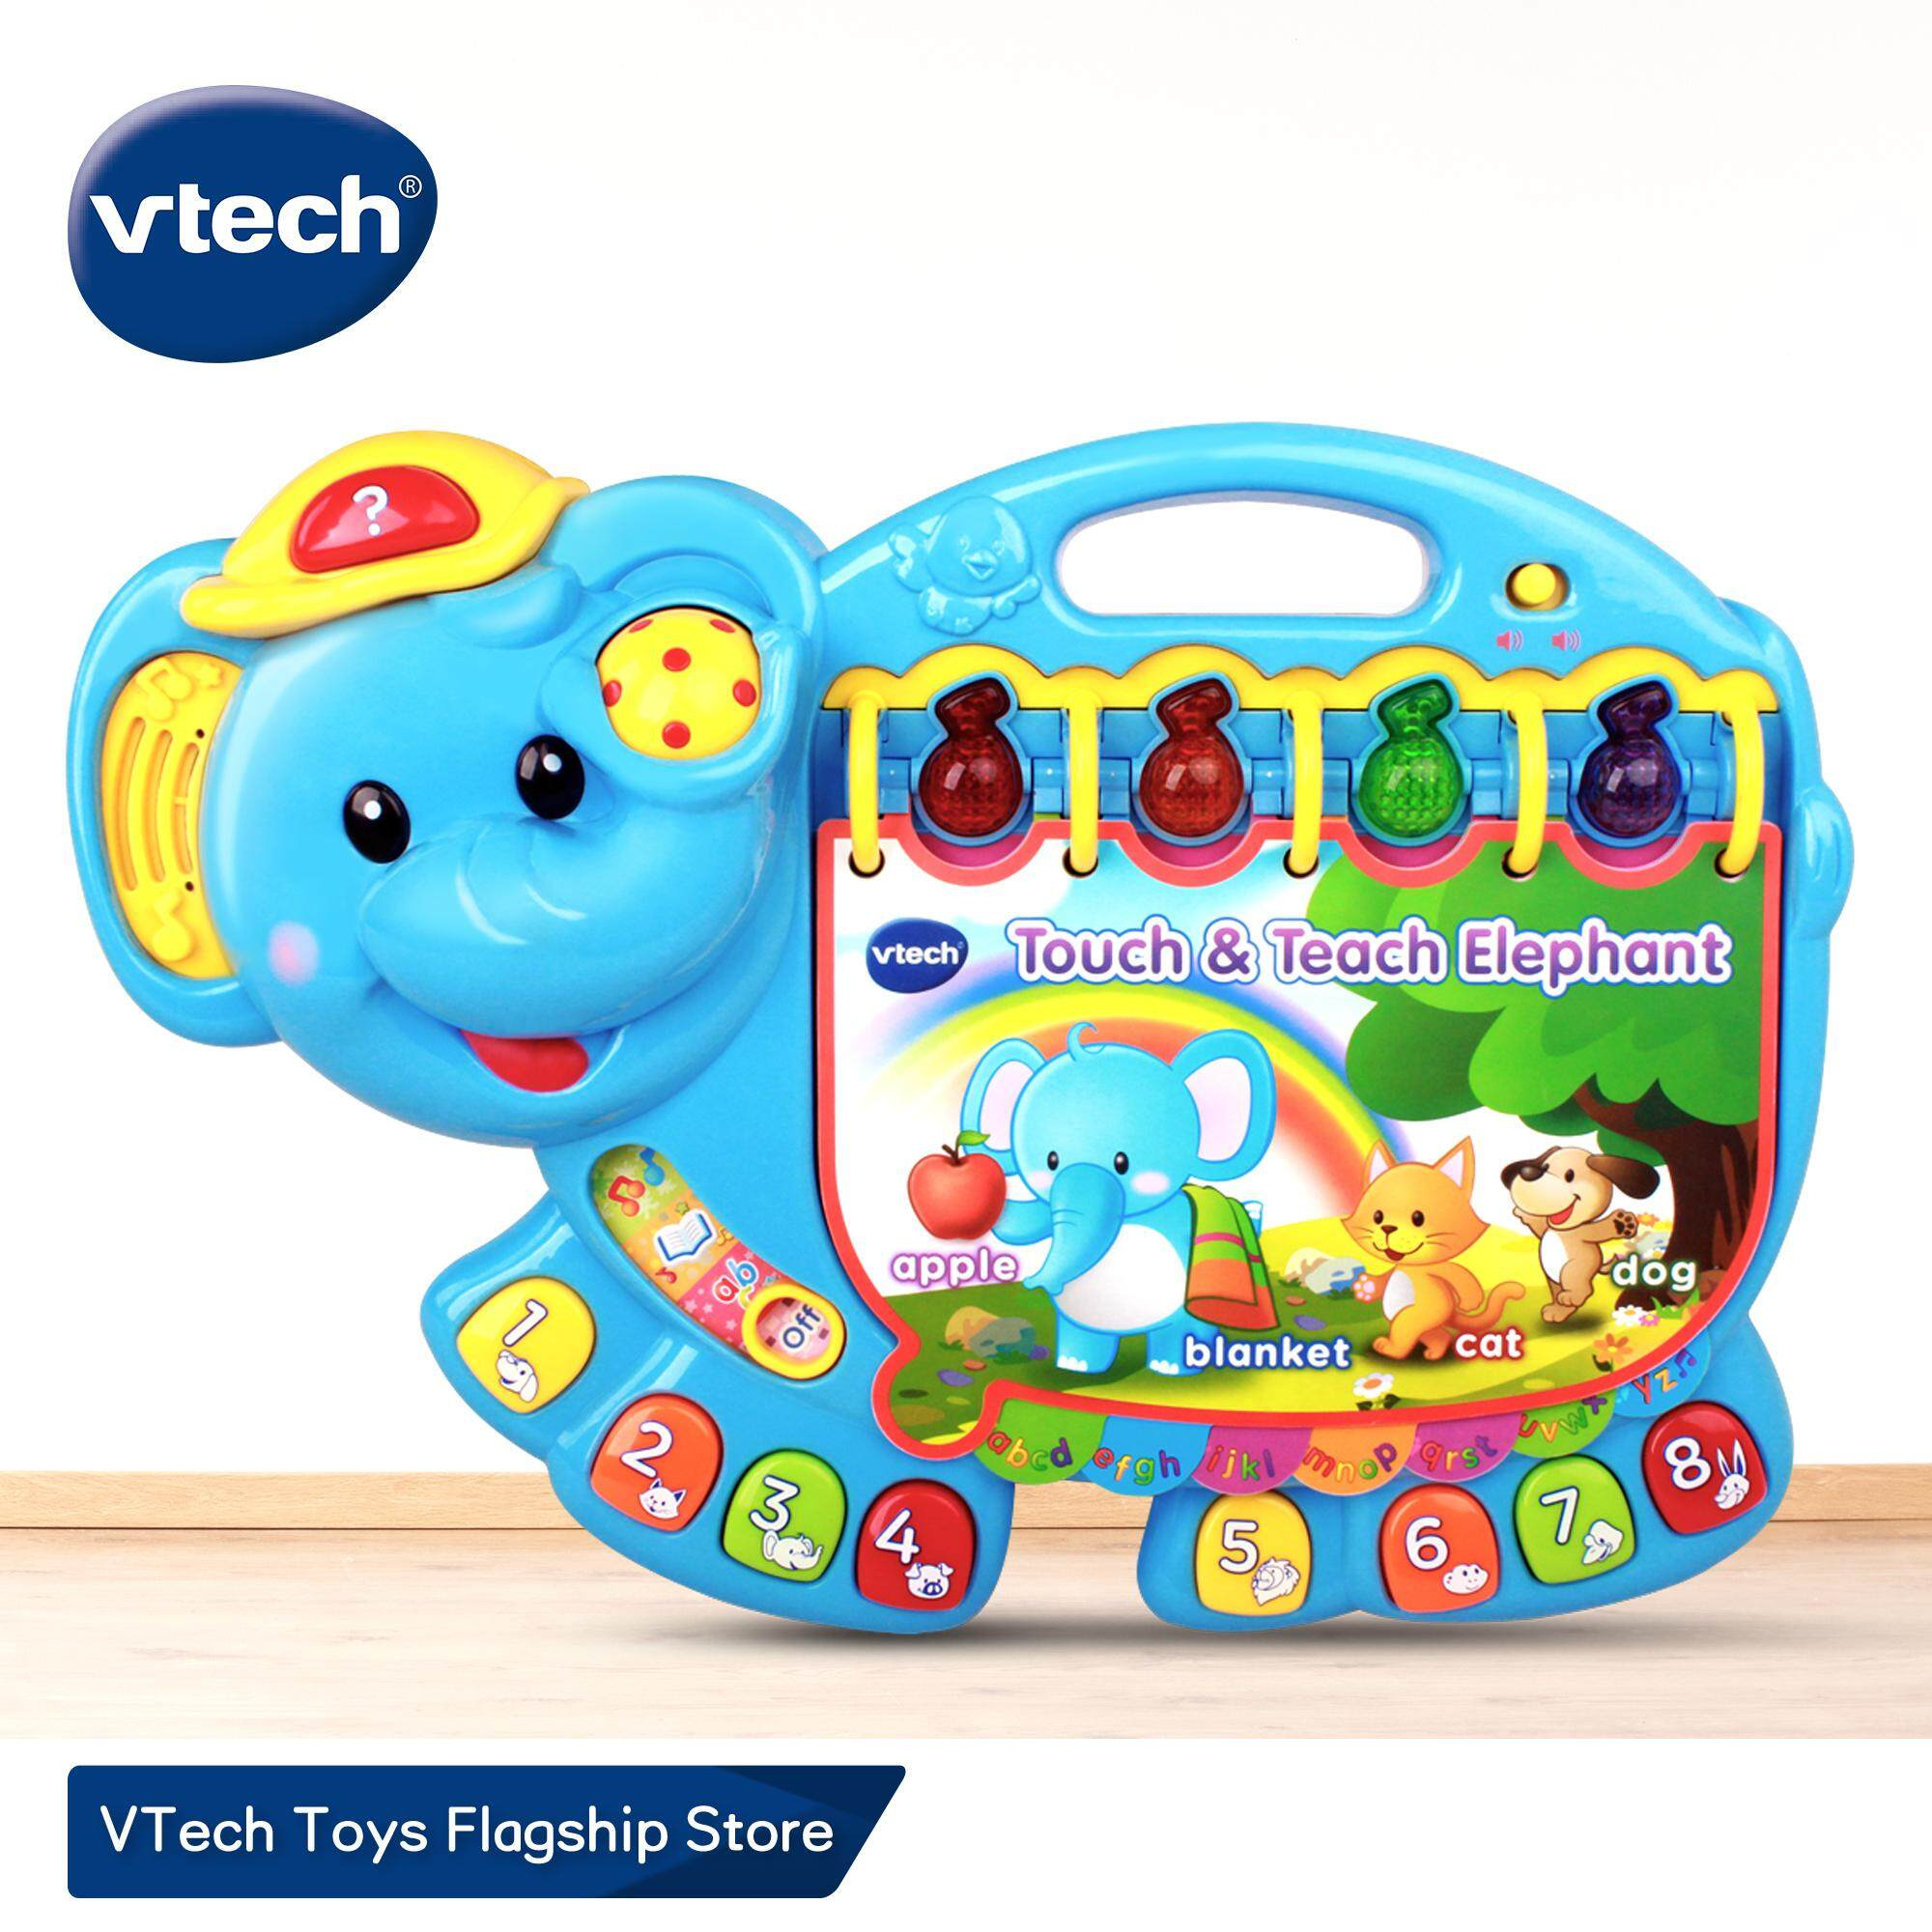 VTech English Alphabet Phonics Electronic Learning Book Touch and Learn  Elephant English Phonics Learning Book for Kids 1 years 2 years 3 years